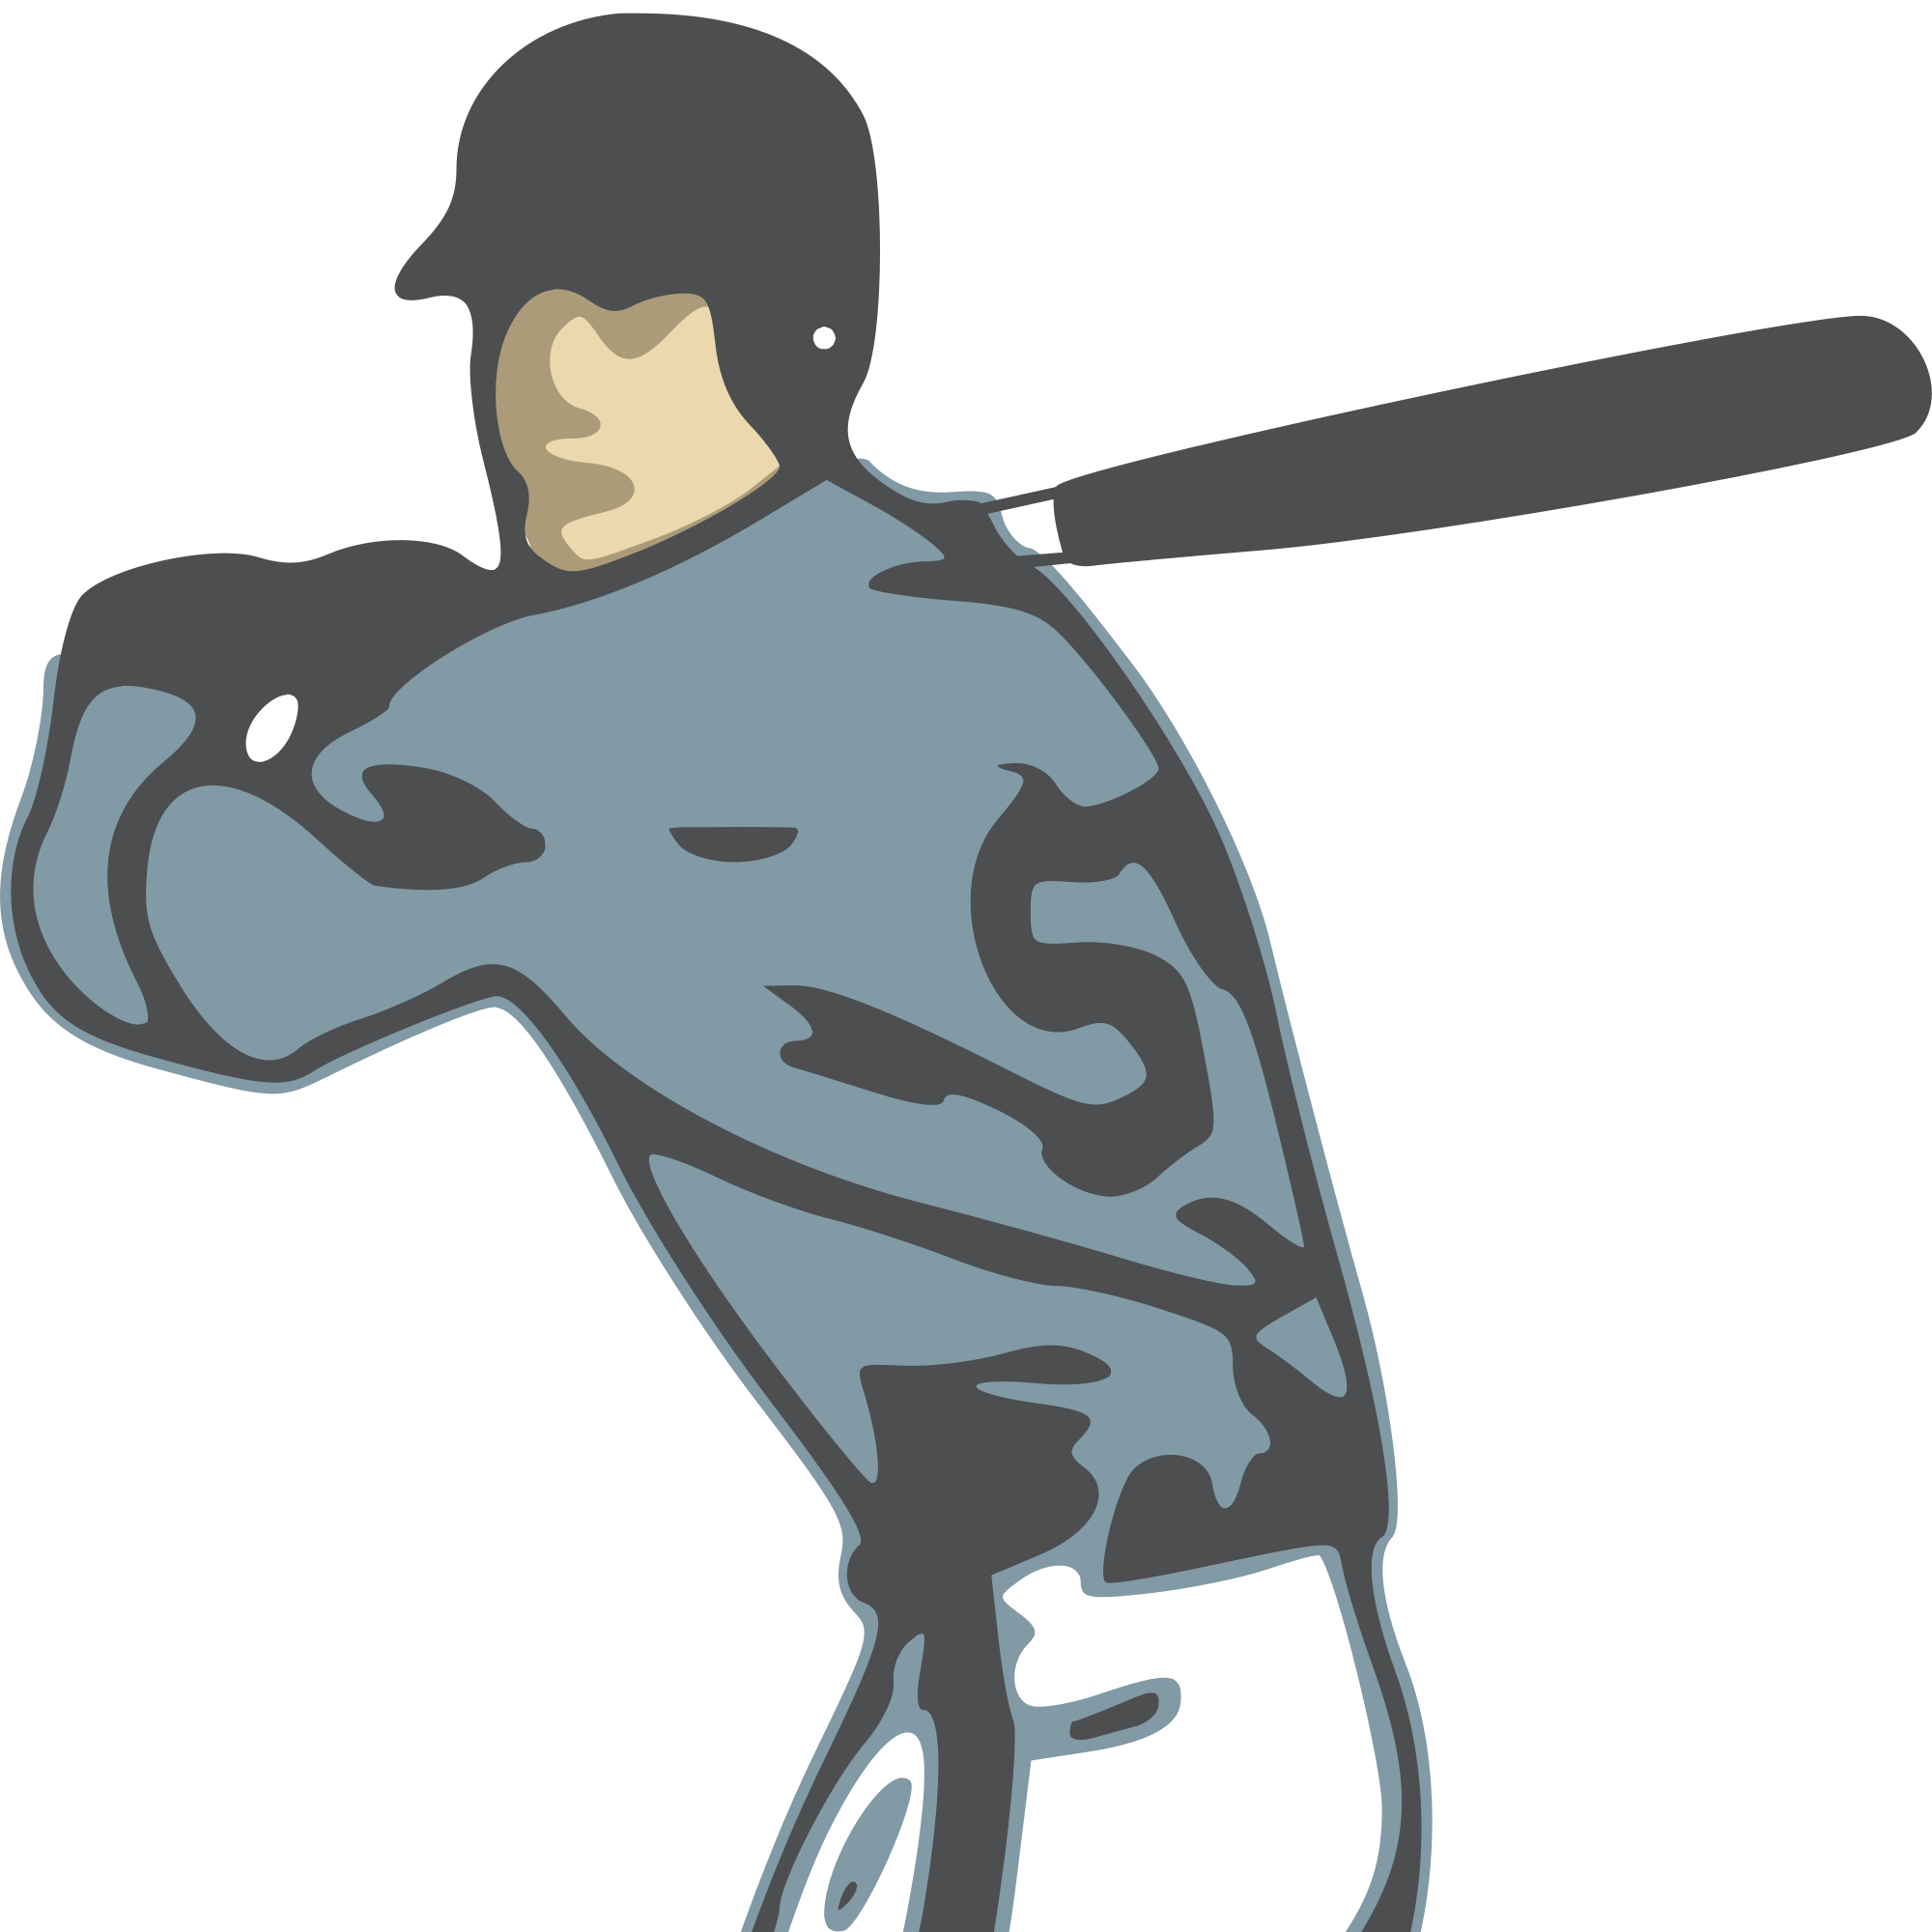 Baseball hitting clipart jpg transparent Baseball Batter Clipart at GetDrawings.com | Free for personal use ... jpg transparent